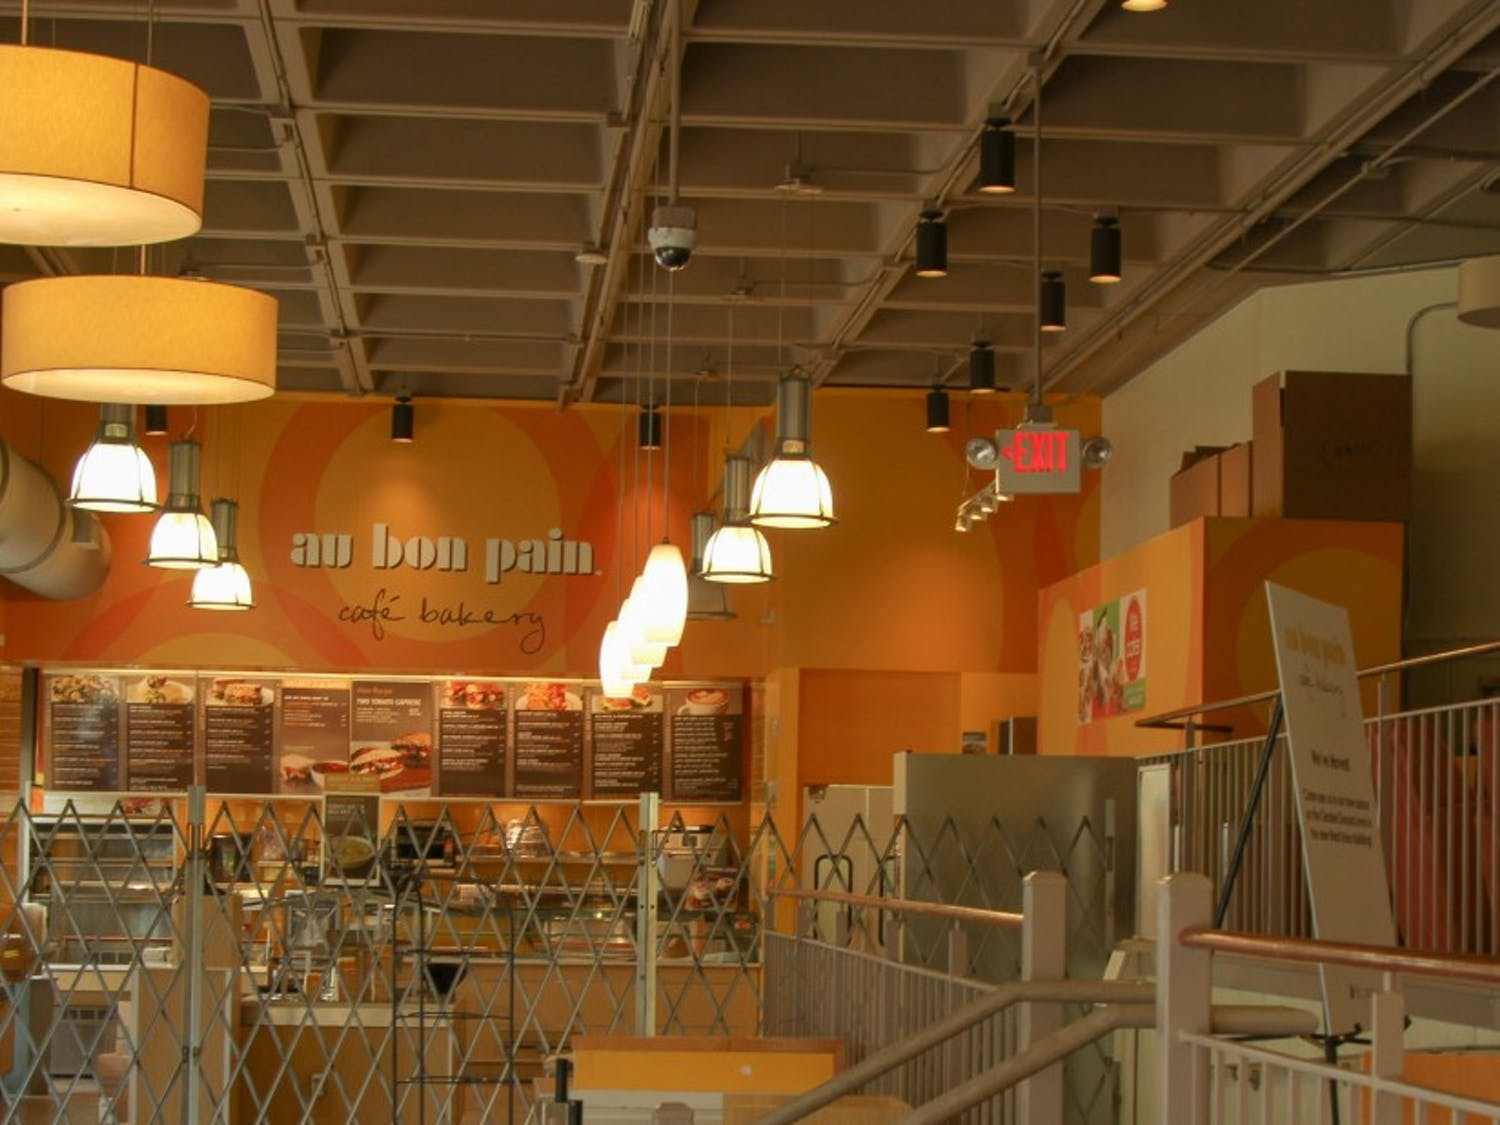 The space formerly occupied by Au Bon Pain will be used for events, with renovations set to be completed by the Spring.